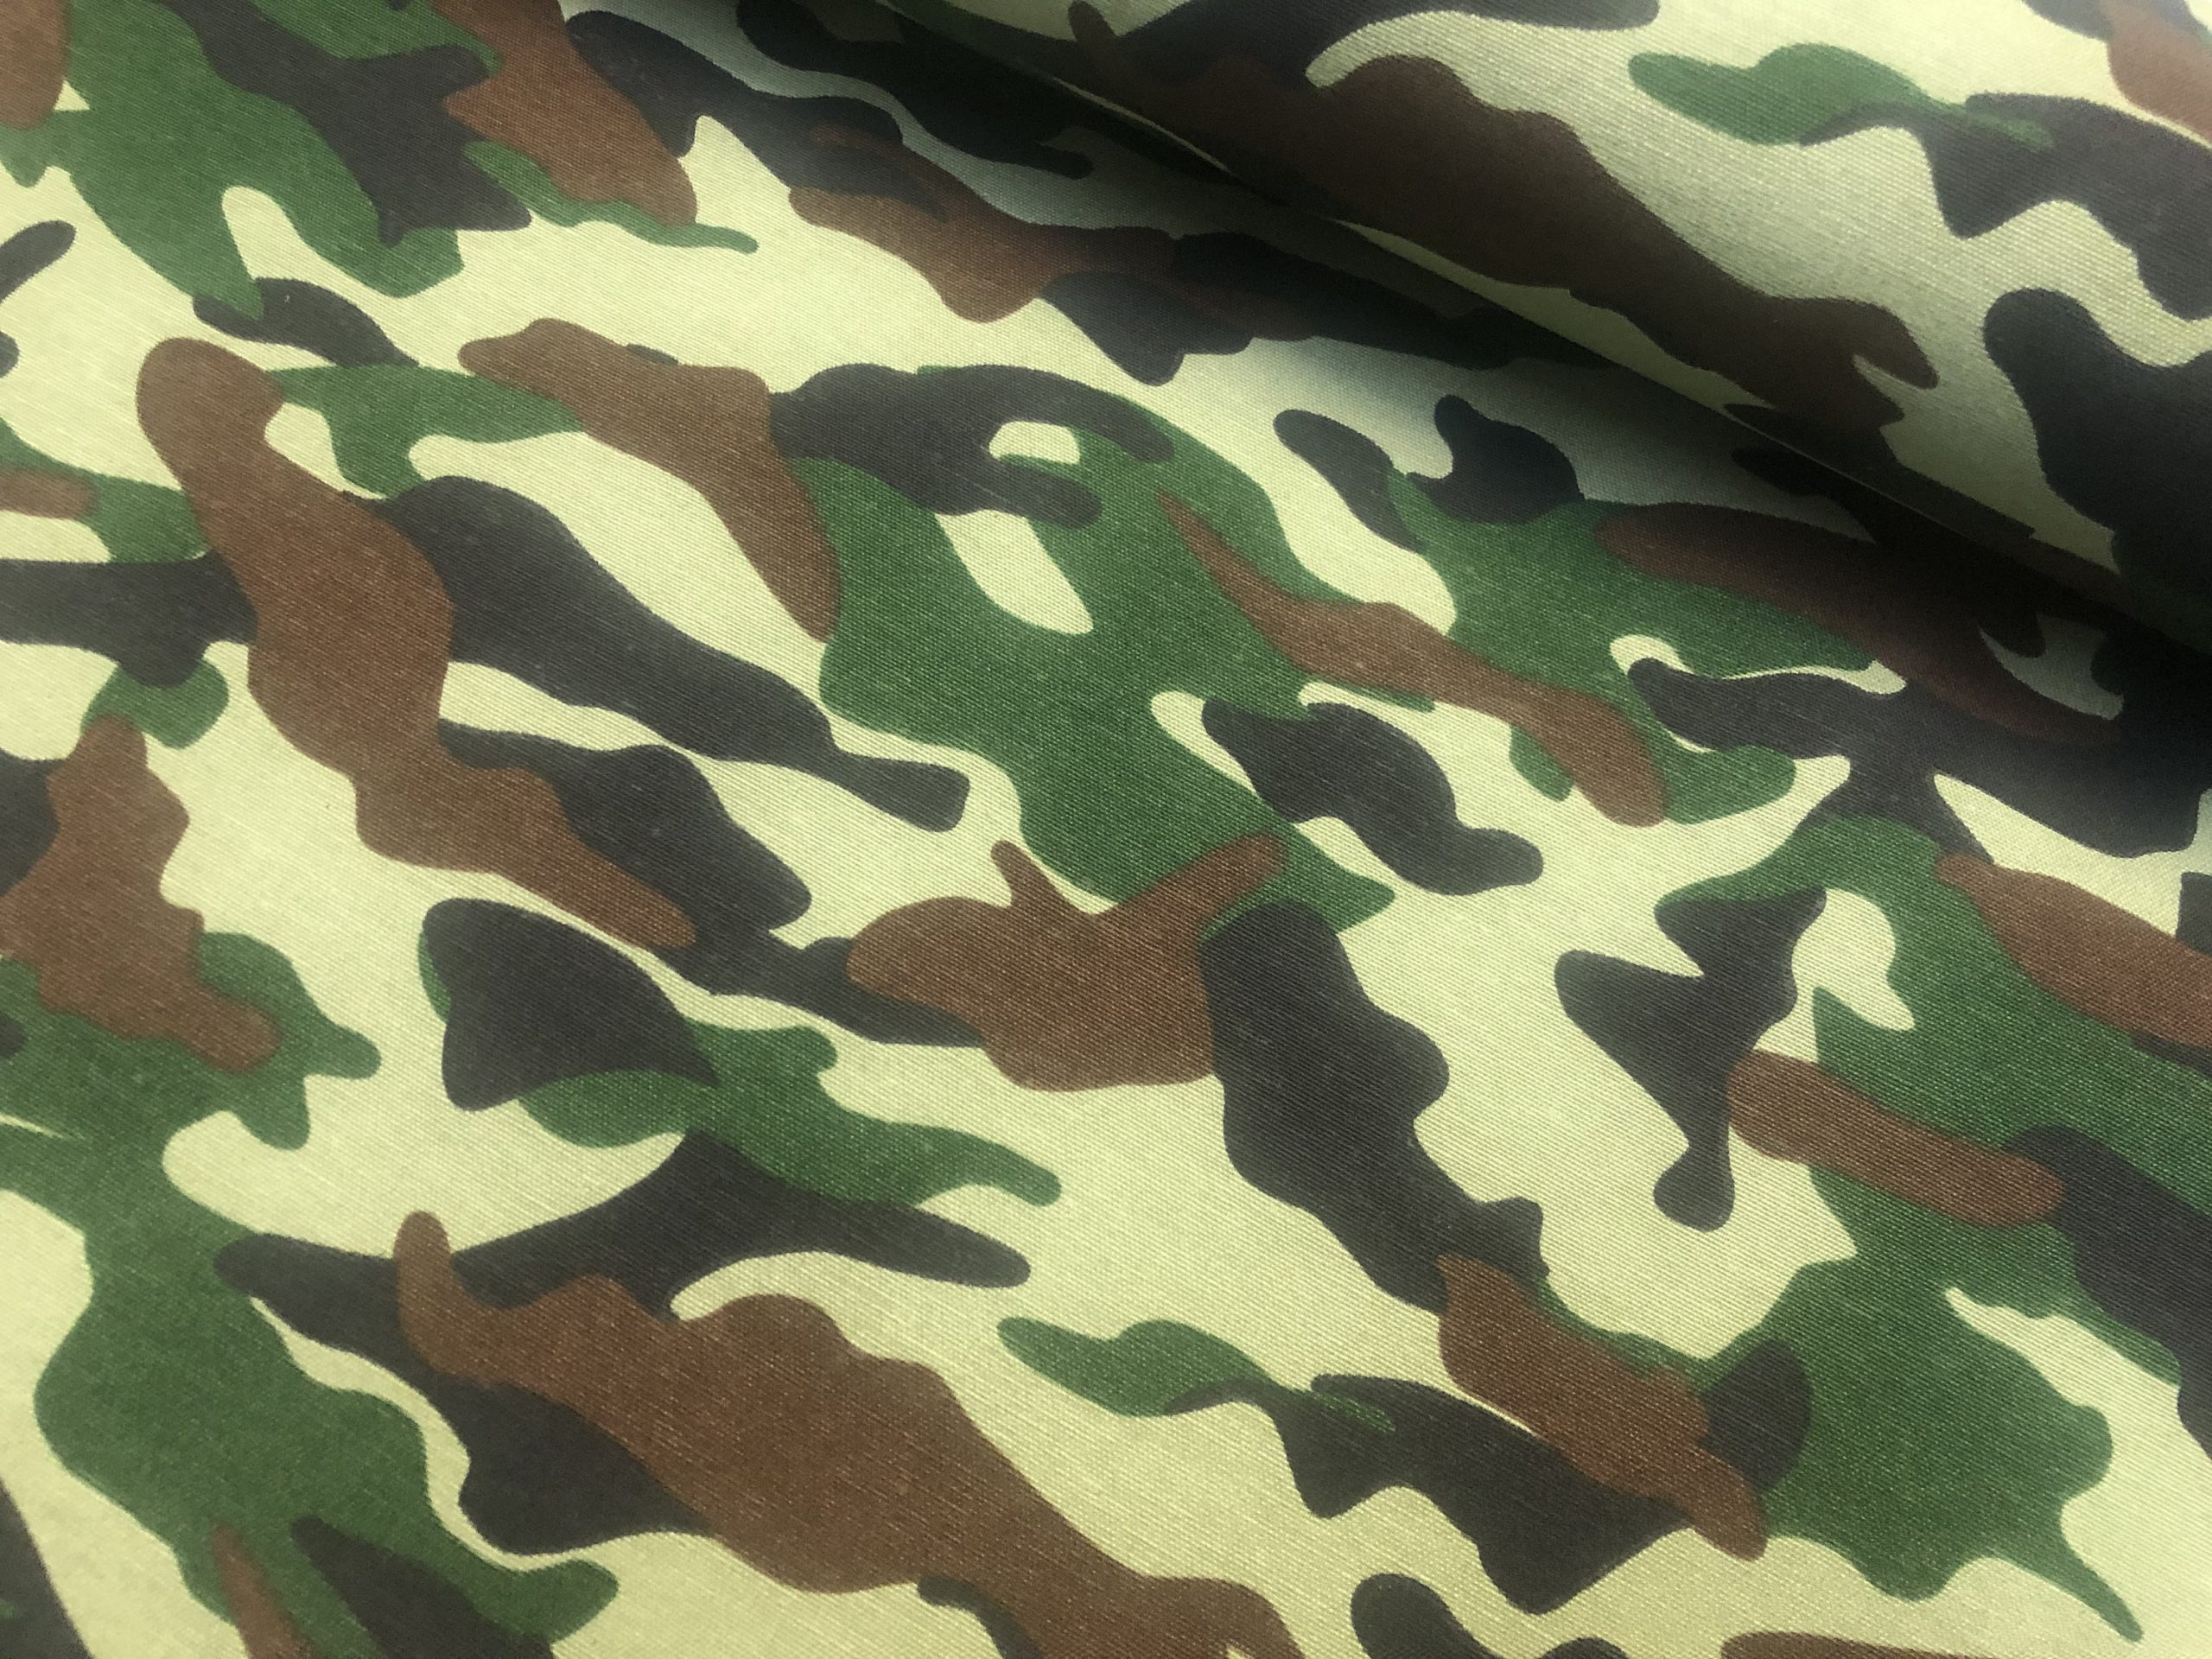 Green Army Camo Camouflage Fabric - Curtain Upholstery ...